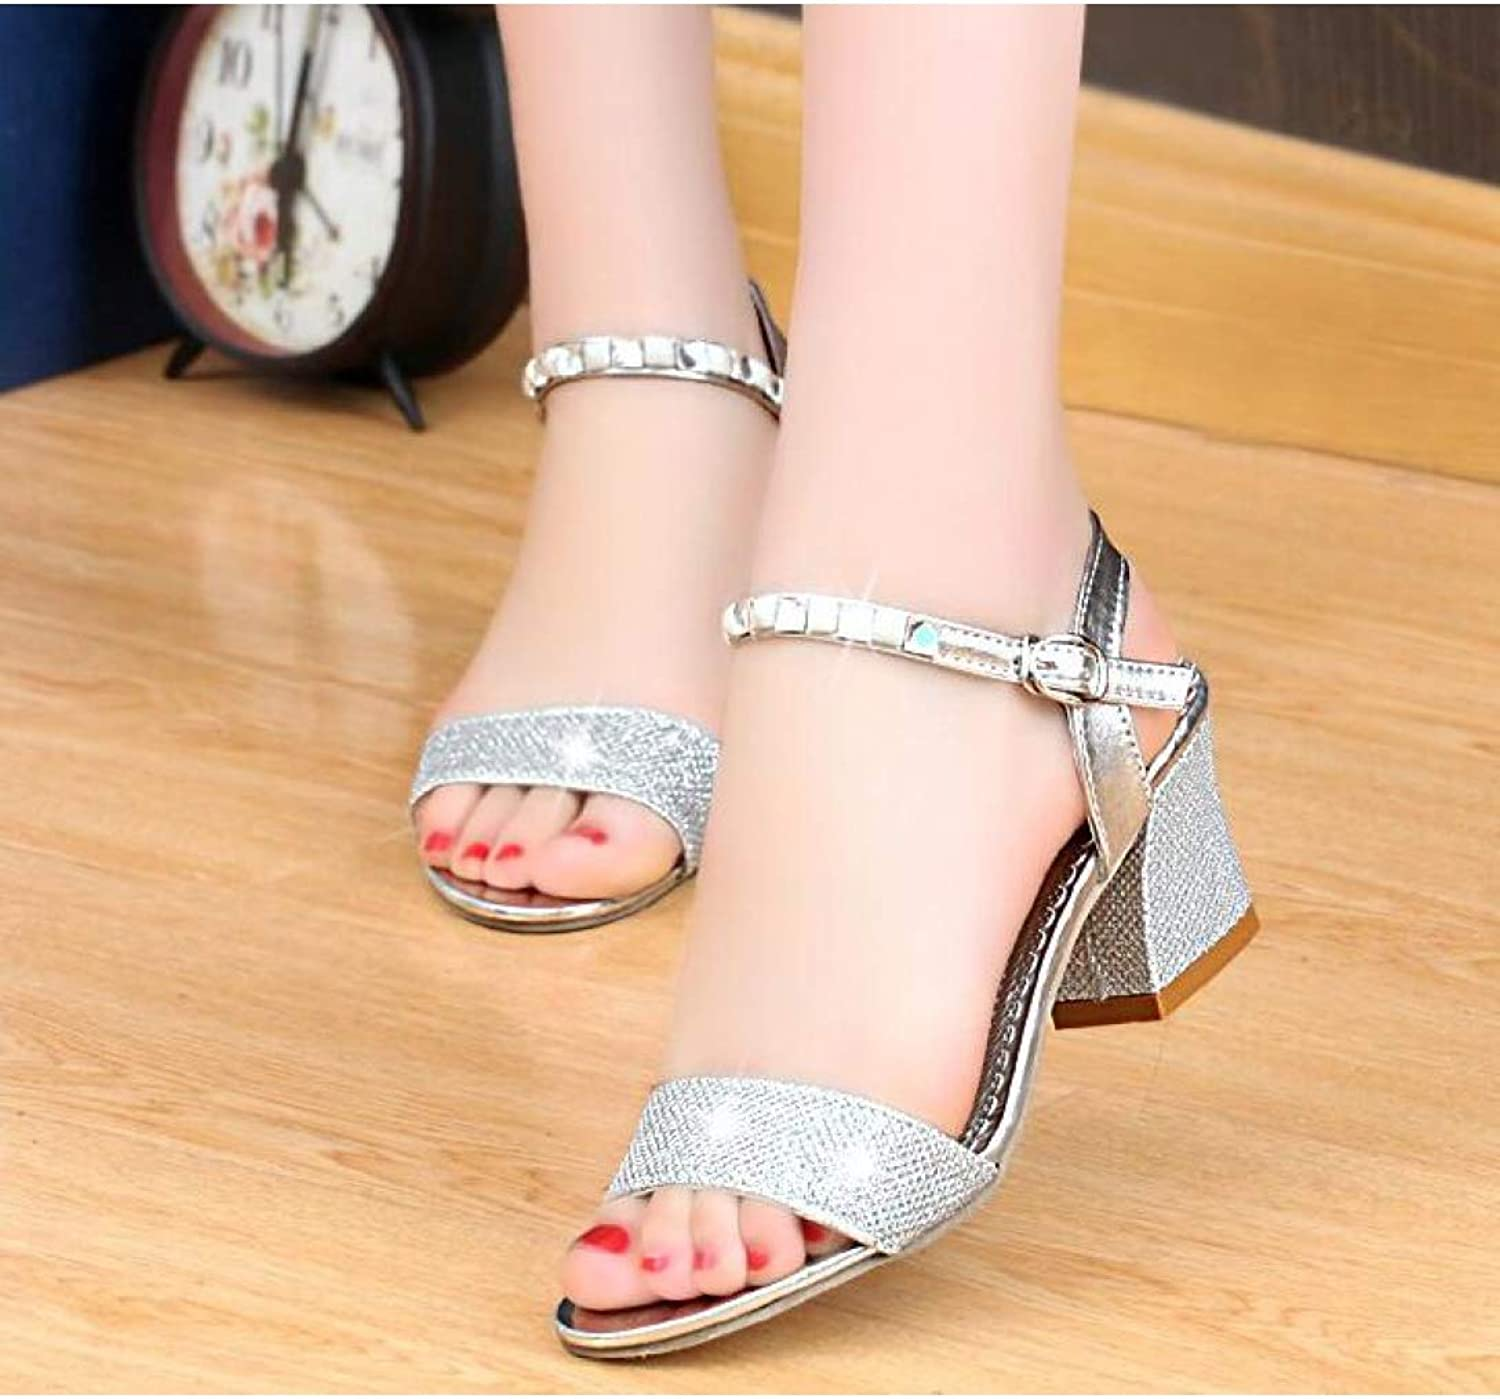 T-JULY Women Sandals Sexy Crystal Summer Square Heel High Heels Ladies Fashion Buckle Strap Pumps shoes